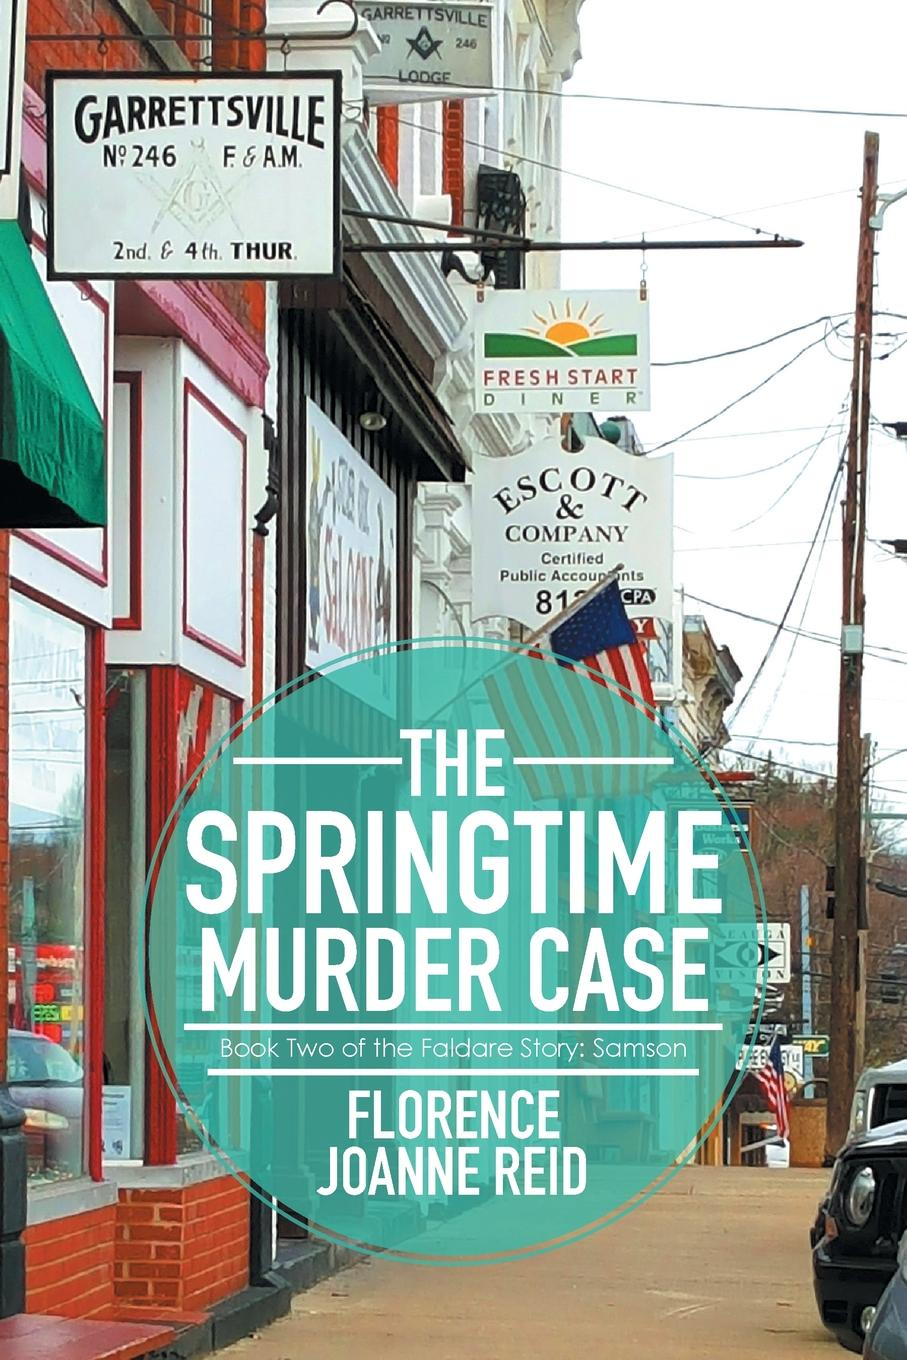 Florence Joanne Reid The Springtime Murder Case. Book Two of the Faldare Story: Samson